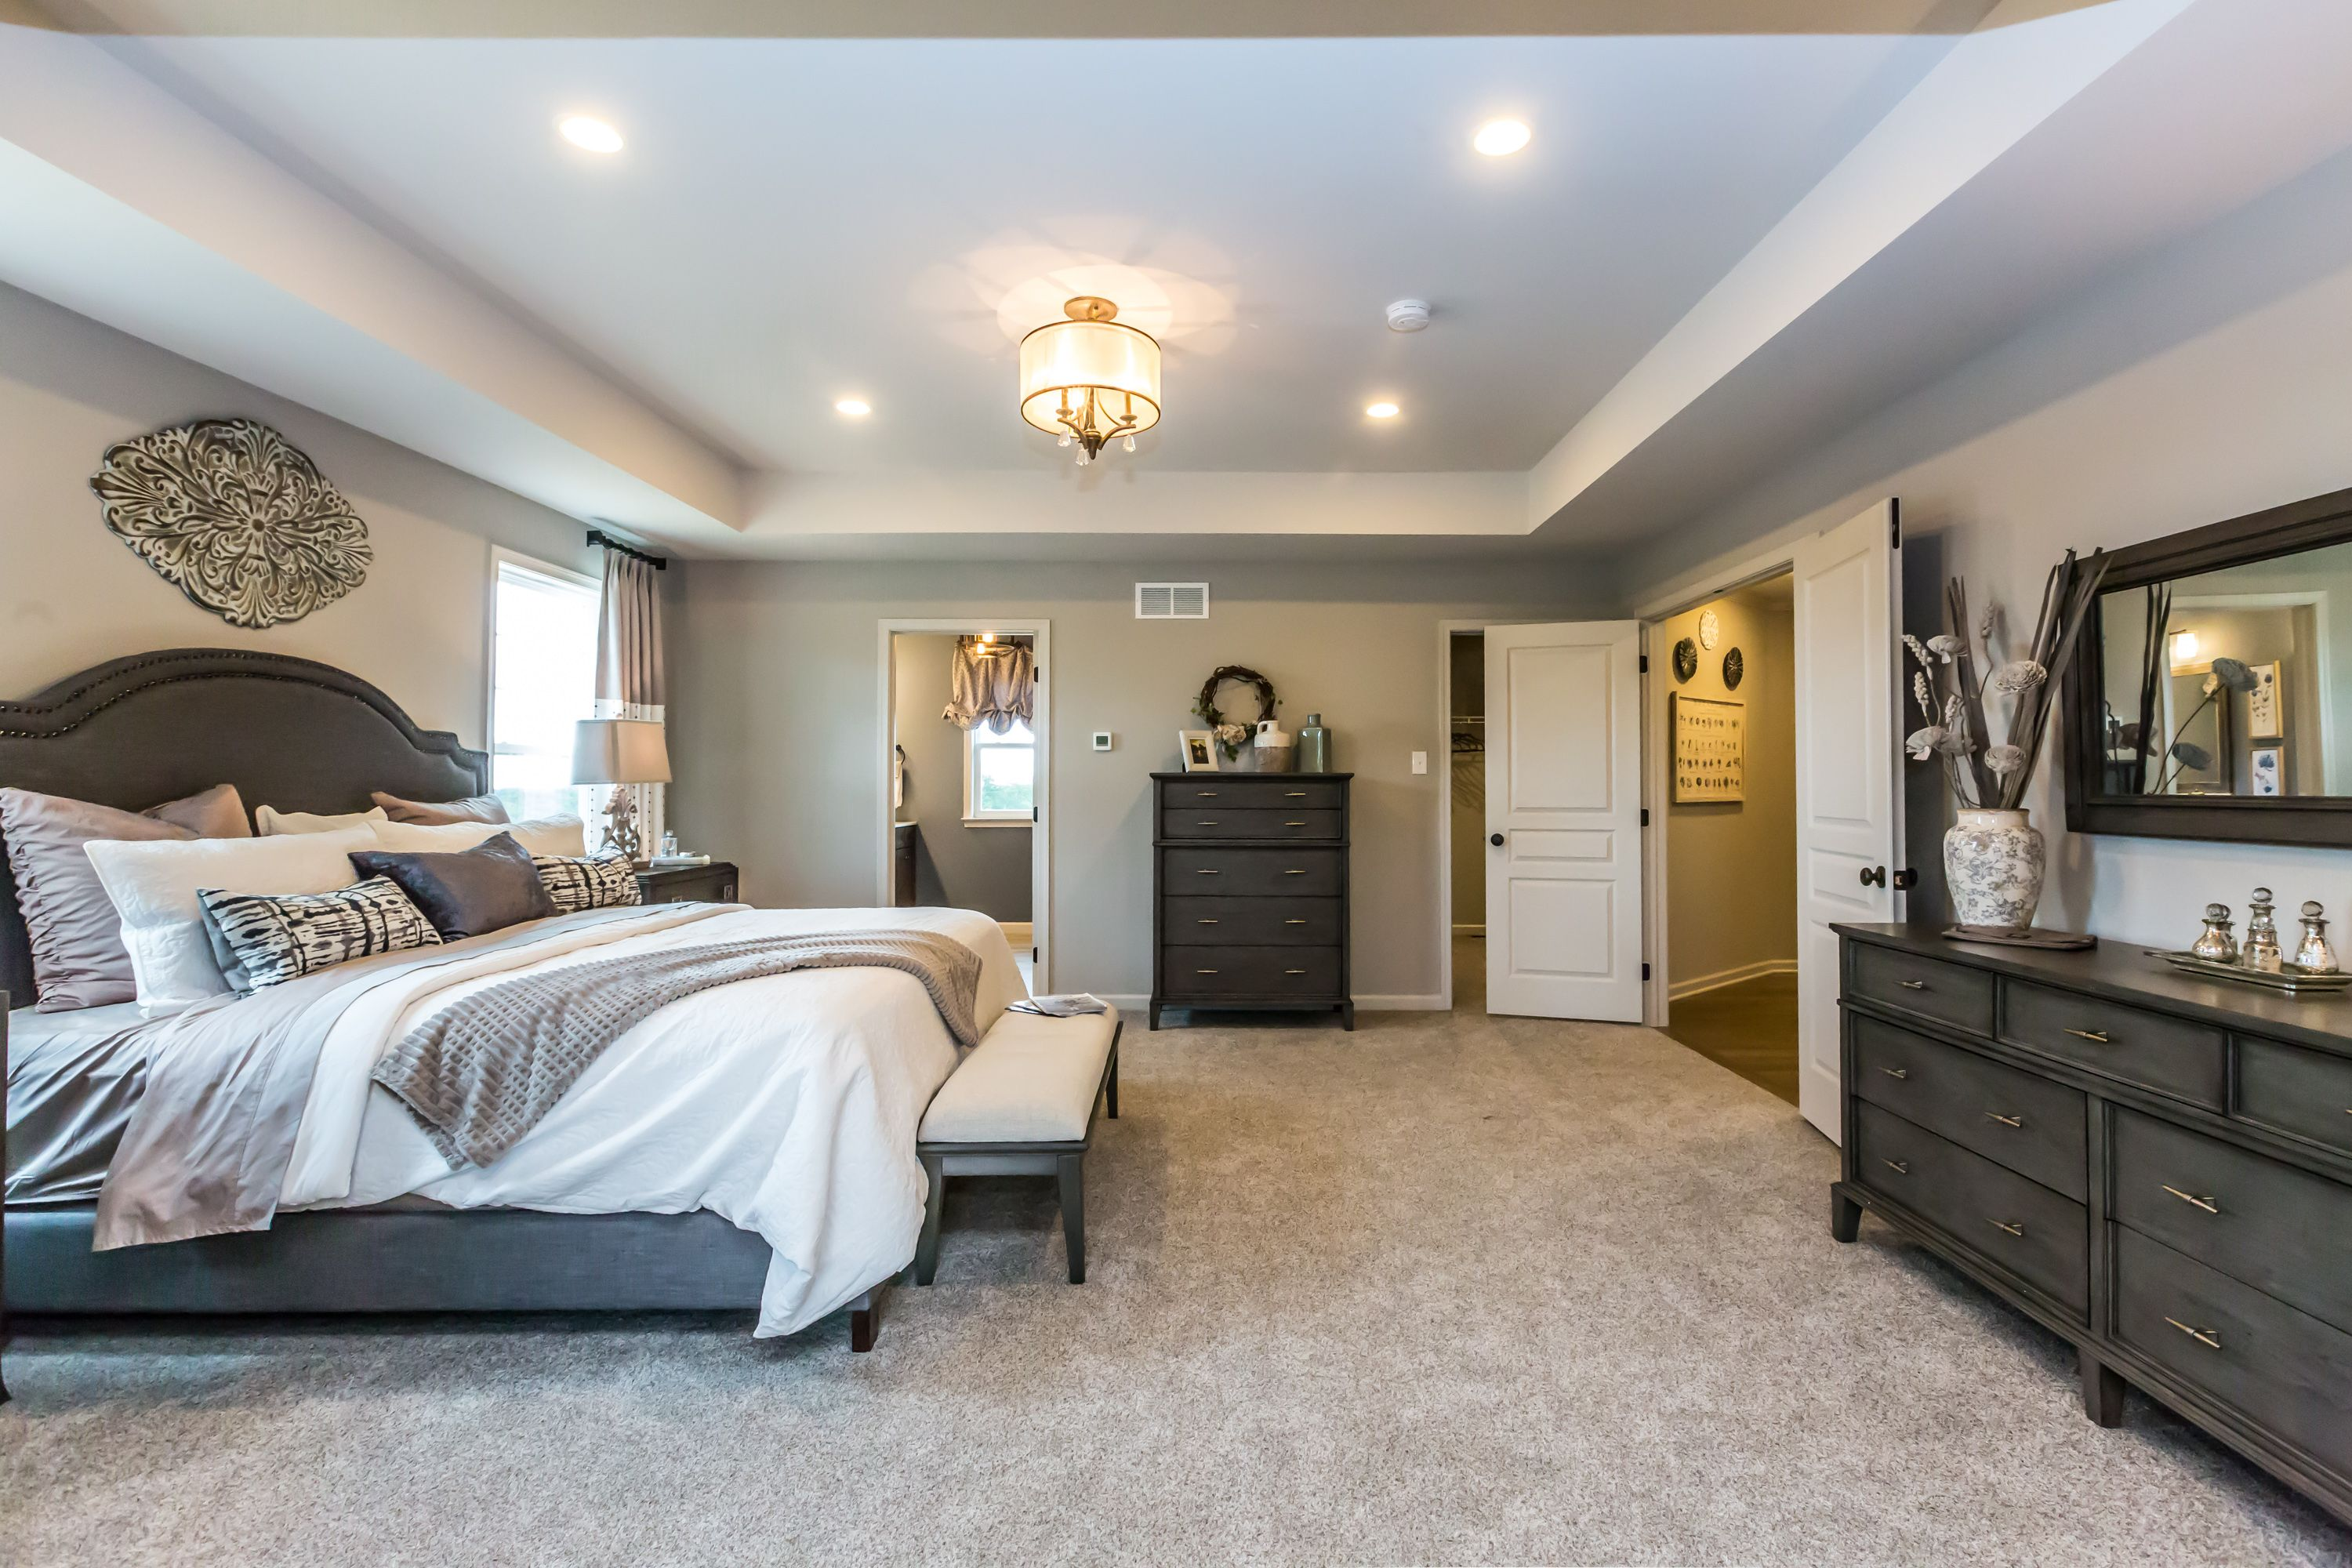 Bedroom featured in the Malvern By Rouse Chamberlin Homes in Philadelphia, PA